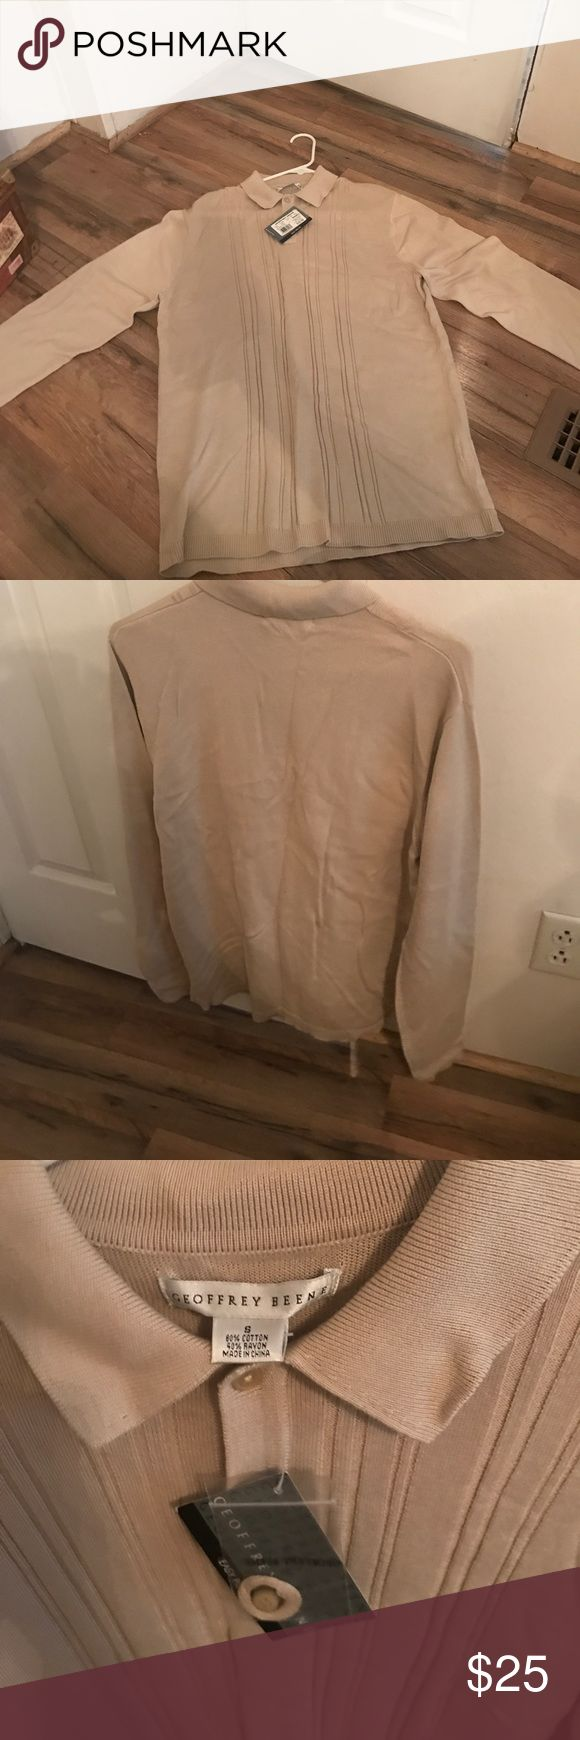 Geoffrey Beene colored shirt Never been worn very light size small 60% 40% rayon Geoffrey Beene Shirts Polos